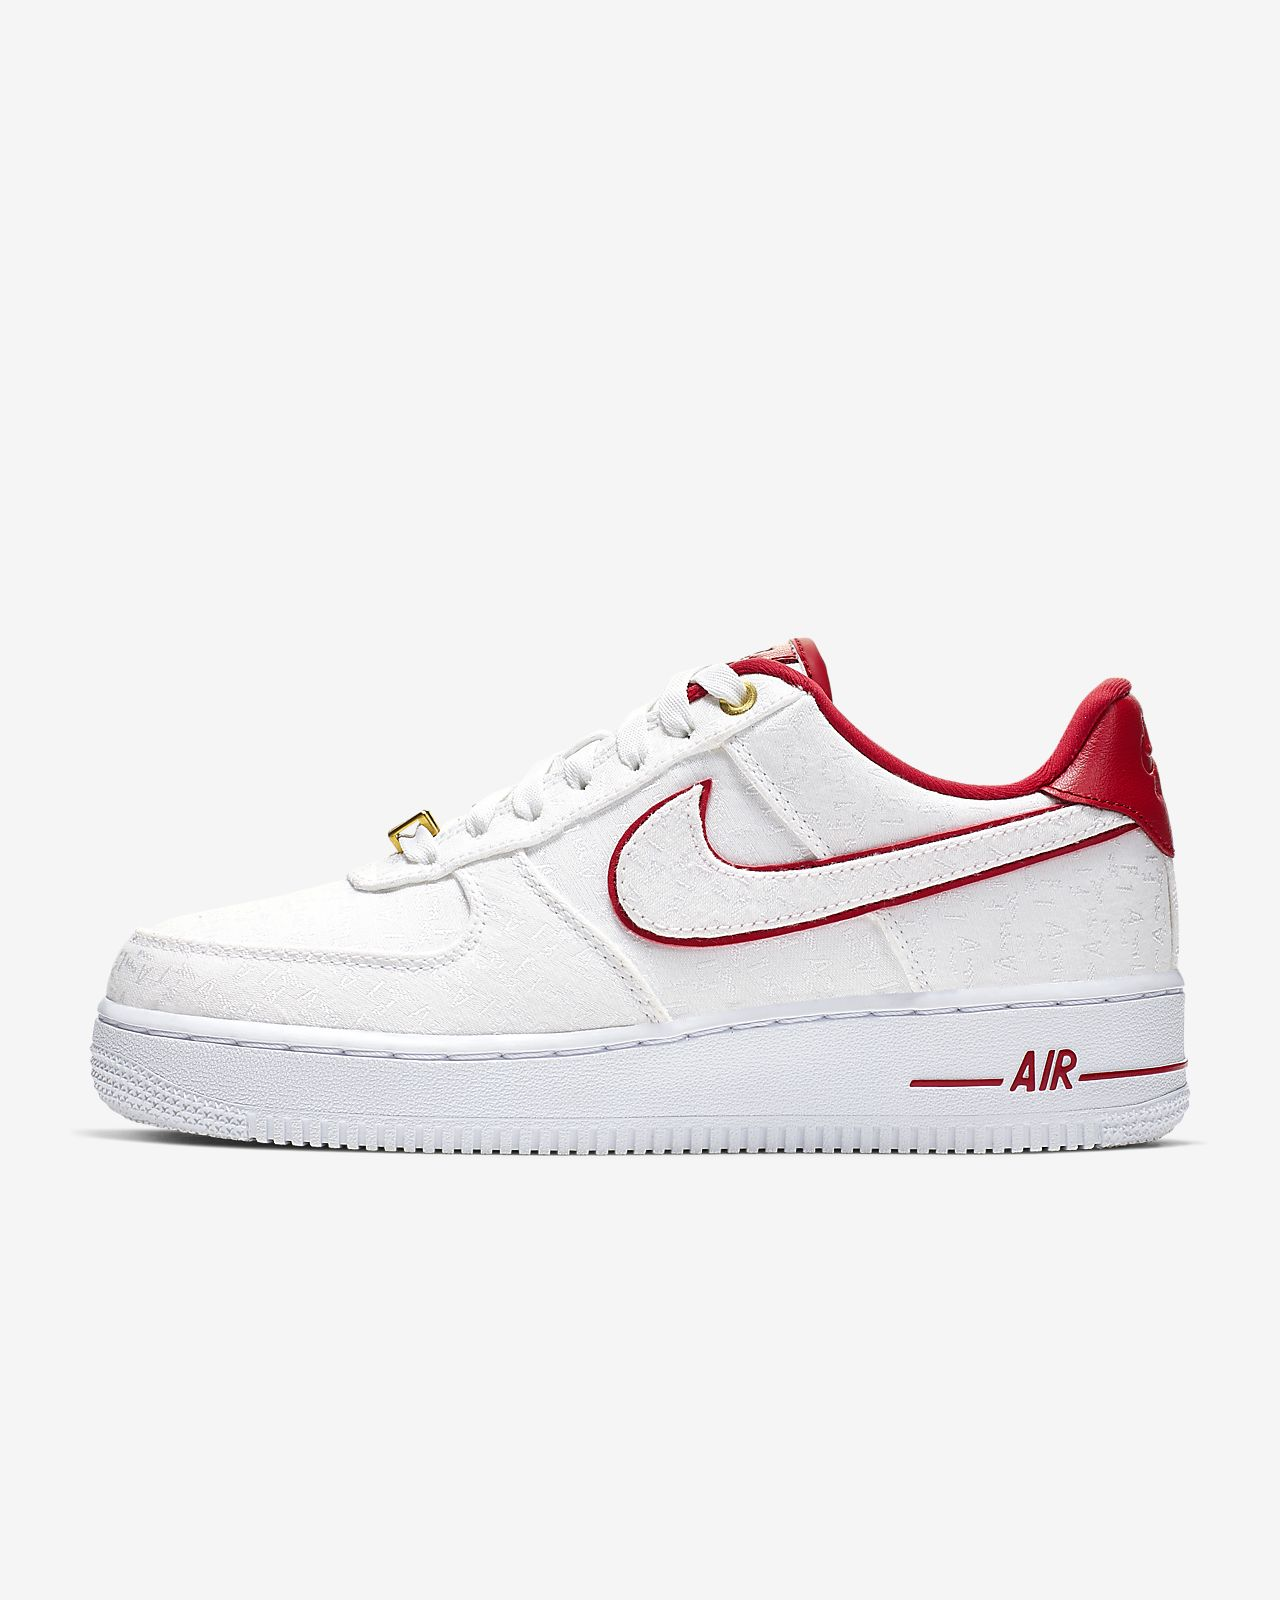 uk availability 343eb 47aee ... Nike Air Force 1  07 Lux Damenschuh